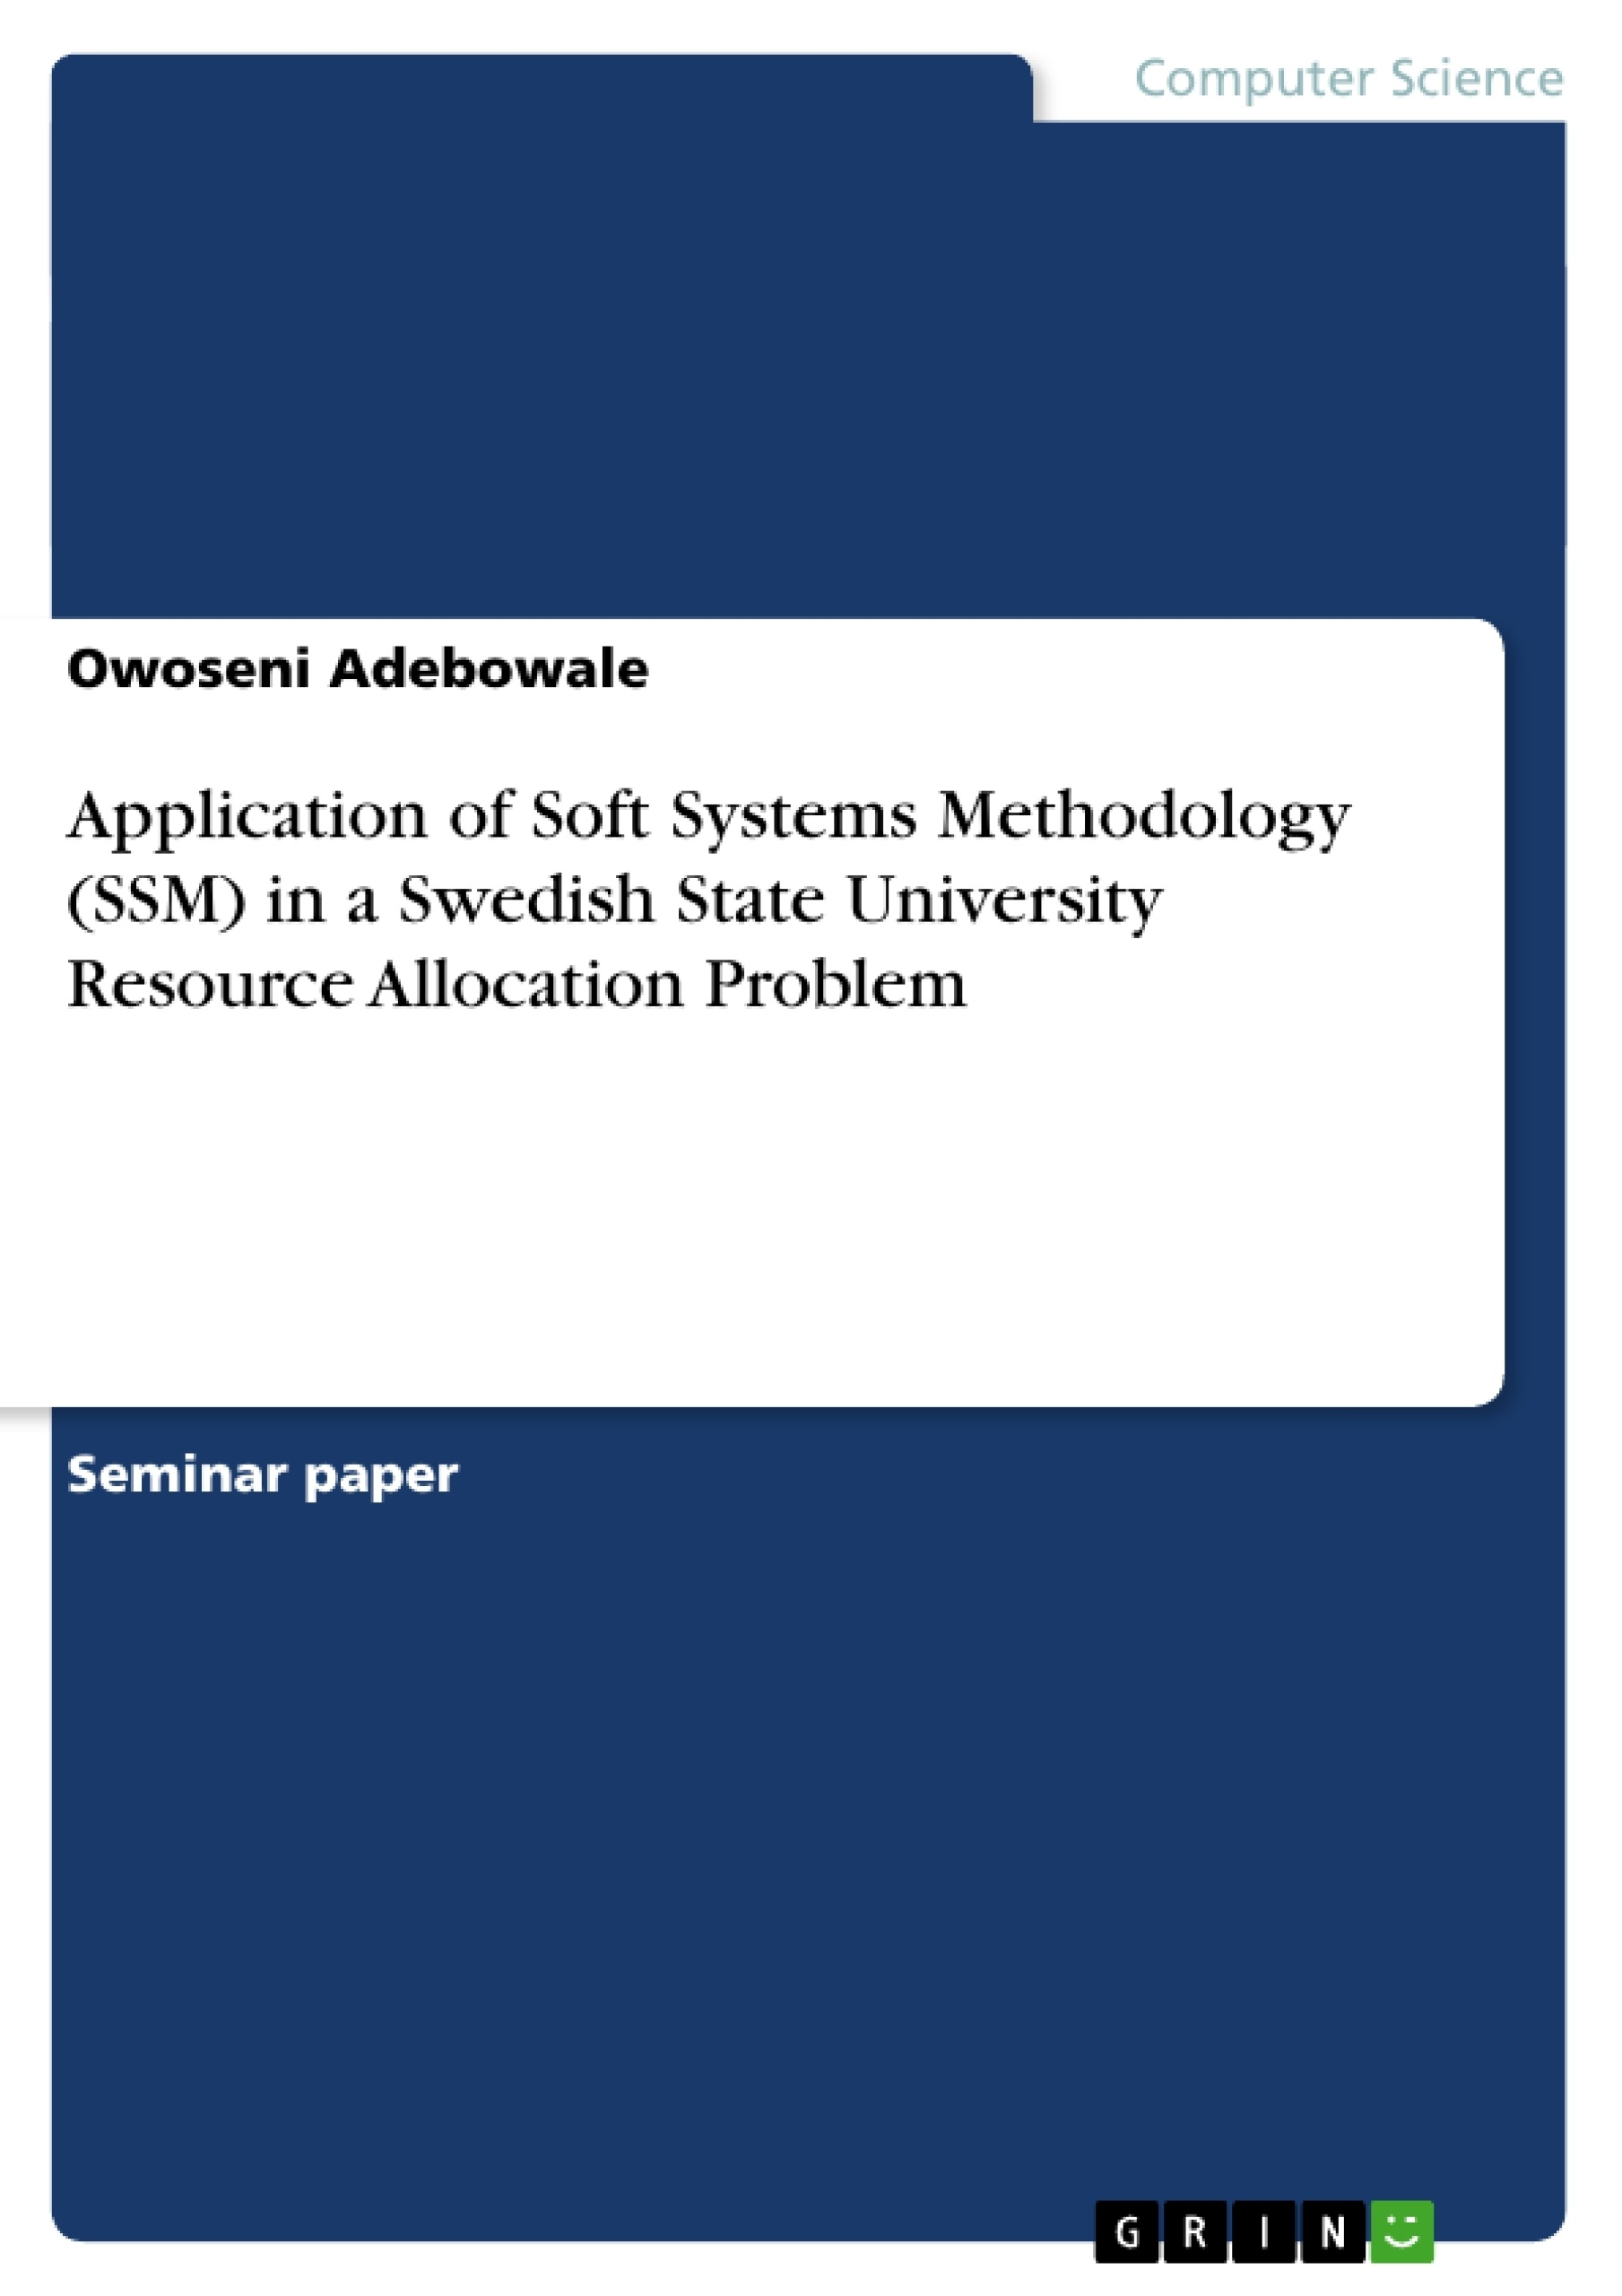 Title: Application of Soft Systems Methodology (SSM) in a Swedish State University Resource Allocation Problem